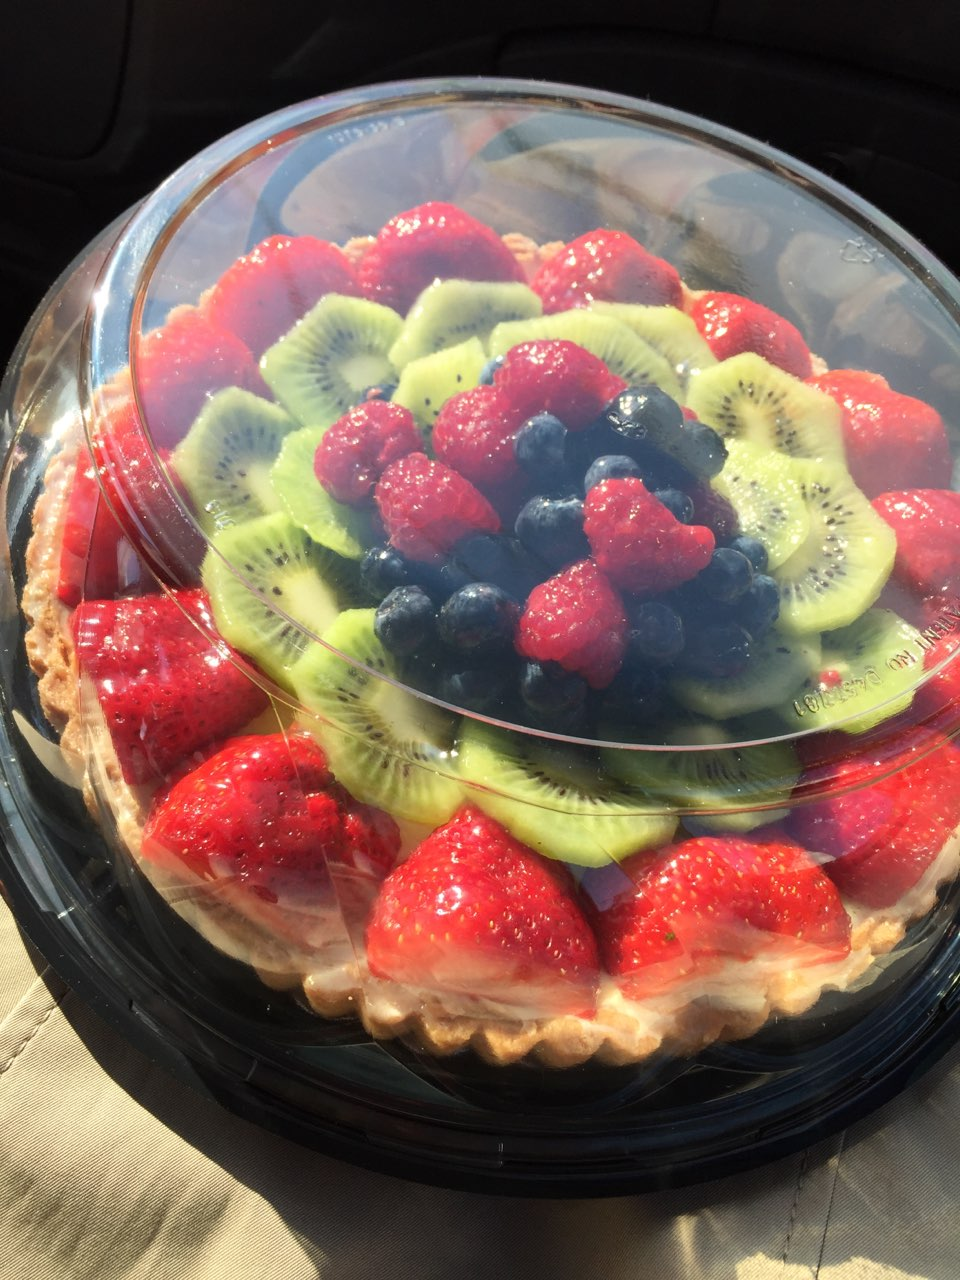 Marvelous Fruit Tart For My Birthday Instead Of A Cake Fooducate Diet Personalised Birthday Cards Akebfashionlily Jamesorg